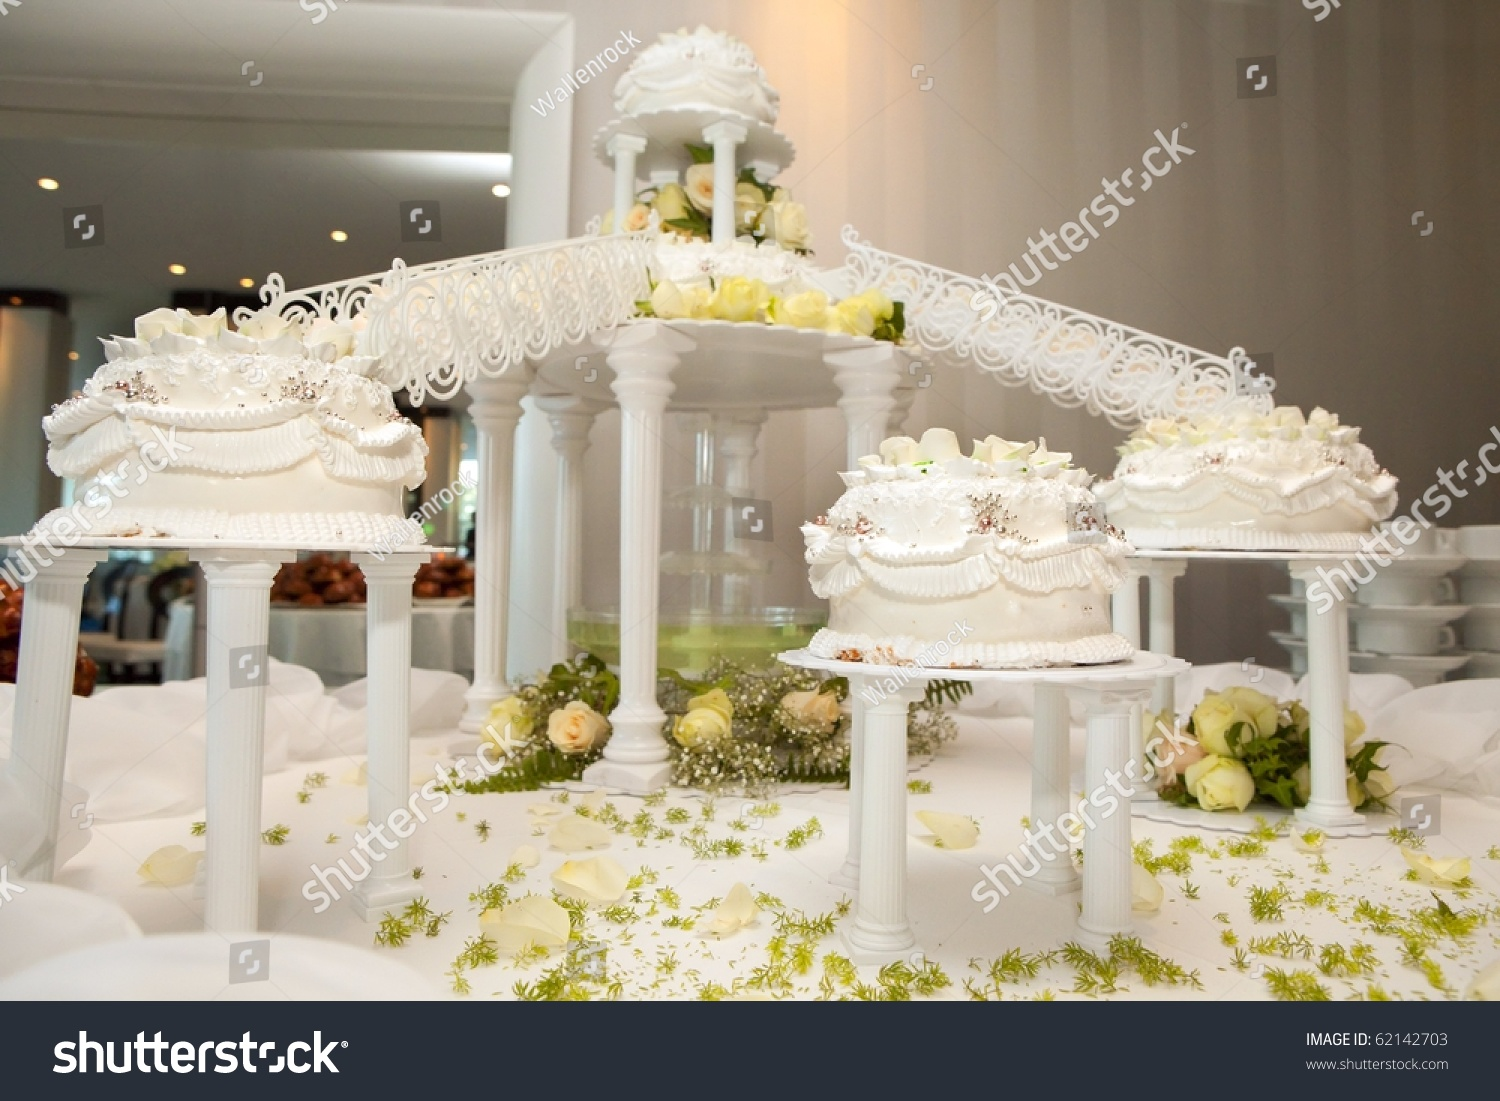 Wedding Cakes With Roses Connected By Bridges The